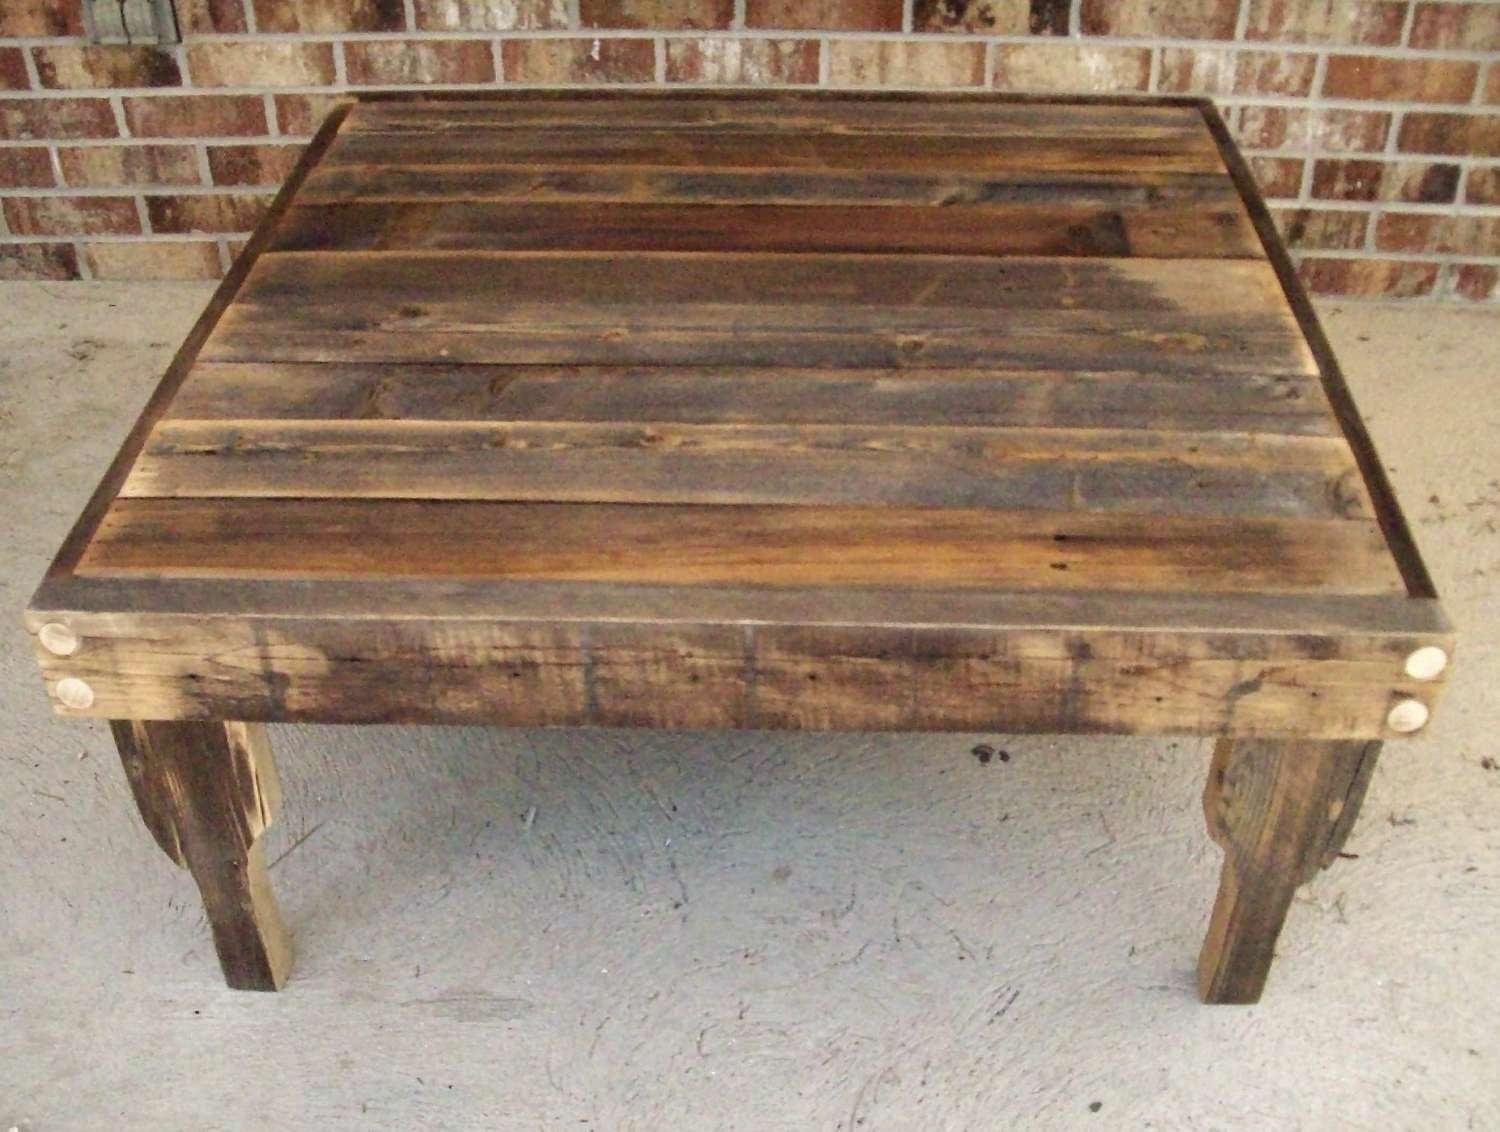 Preferred Hardwood Coffee Tables With Storage Within Coffee Tables : Simple Large Wood Coffee Table Square With Drawers (View 8 of 20)